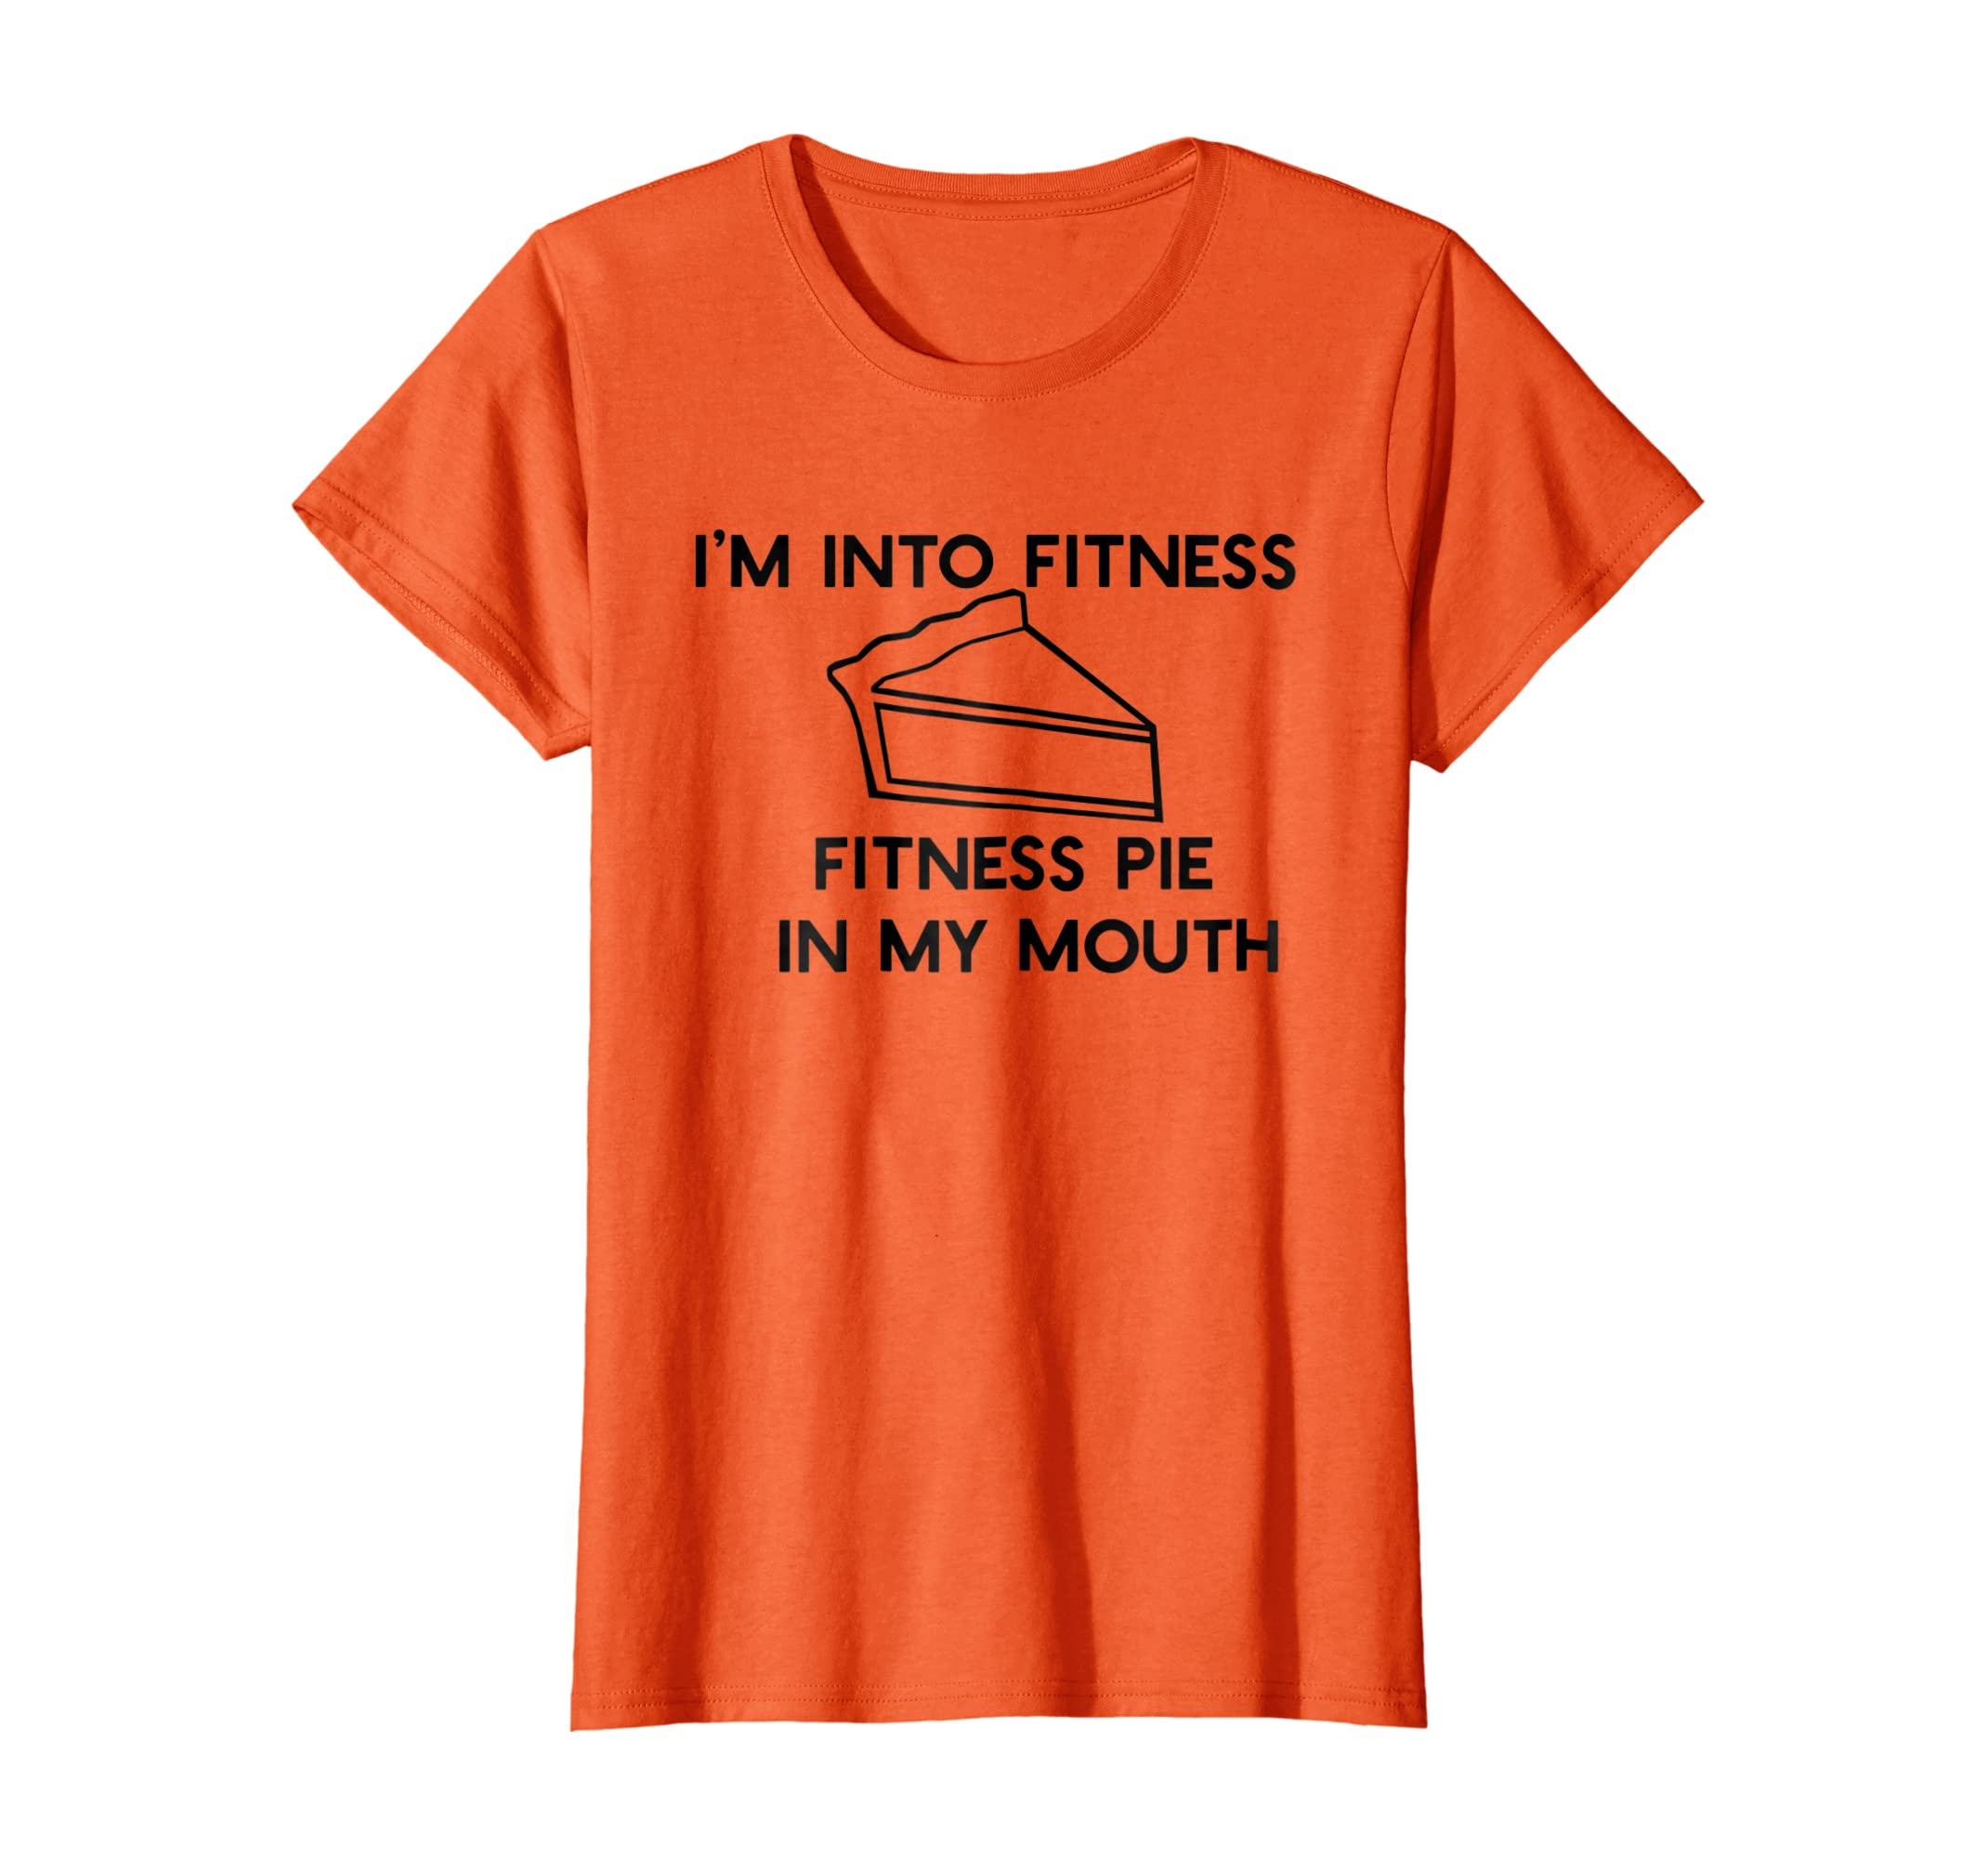 cf488cef99 Amazon.com: I'M INTO FITNESS PIE INTO MY MOUTH T-Shirt Thanksgiving Meme:  Clothing